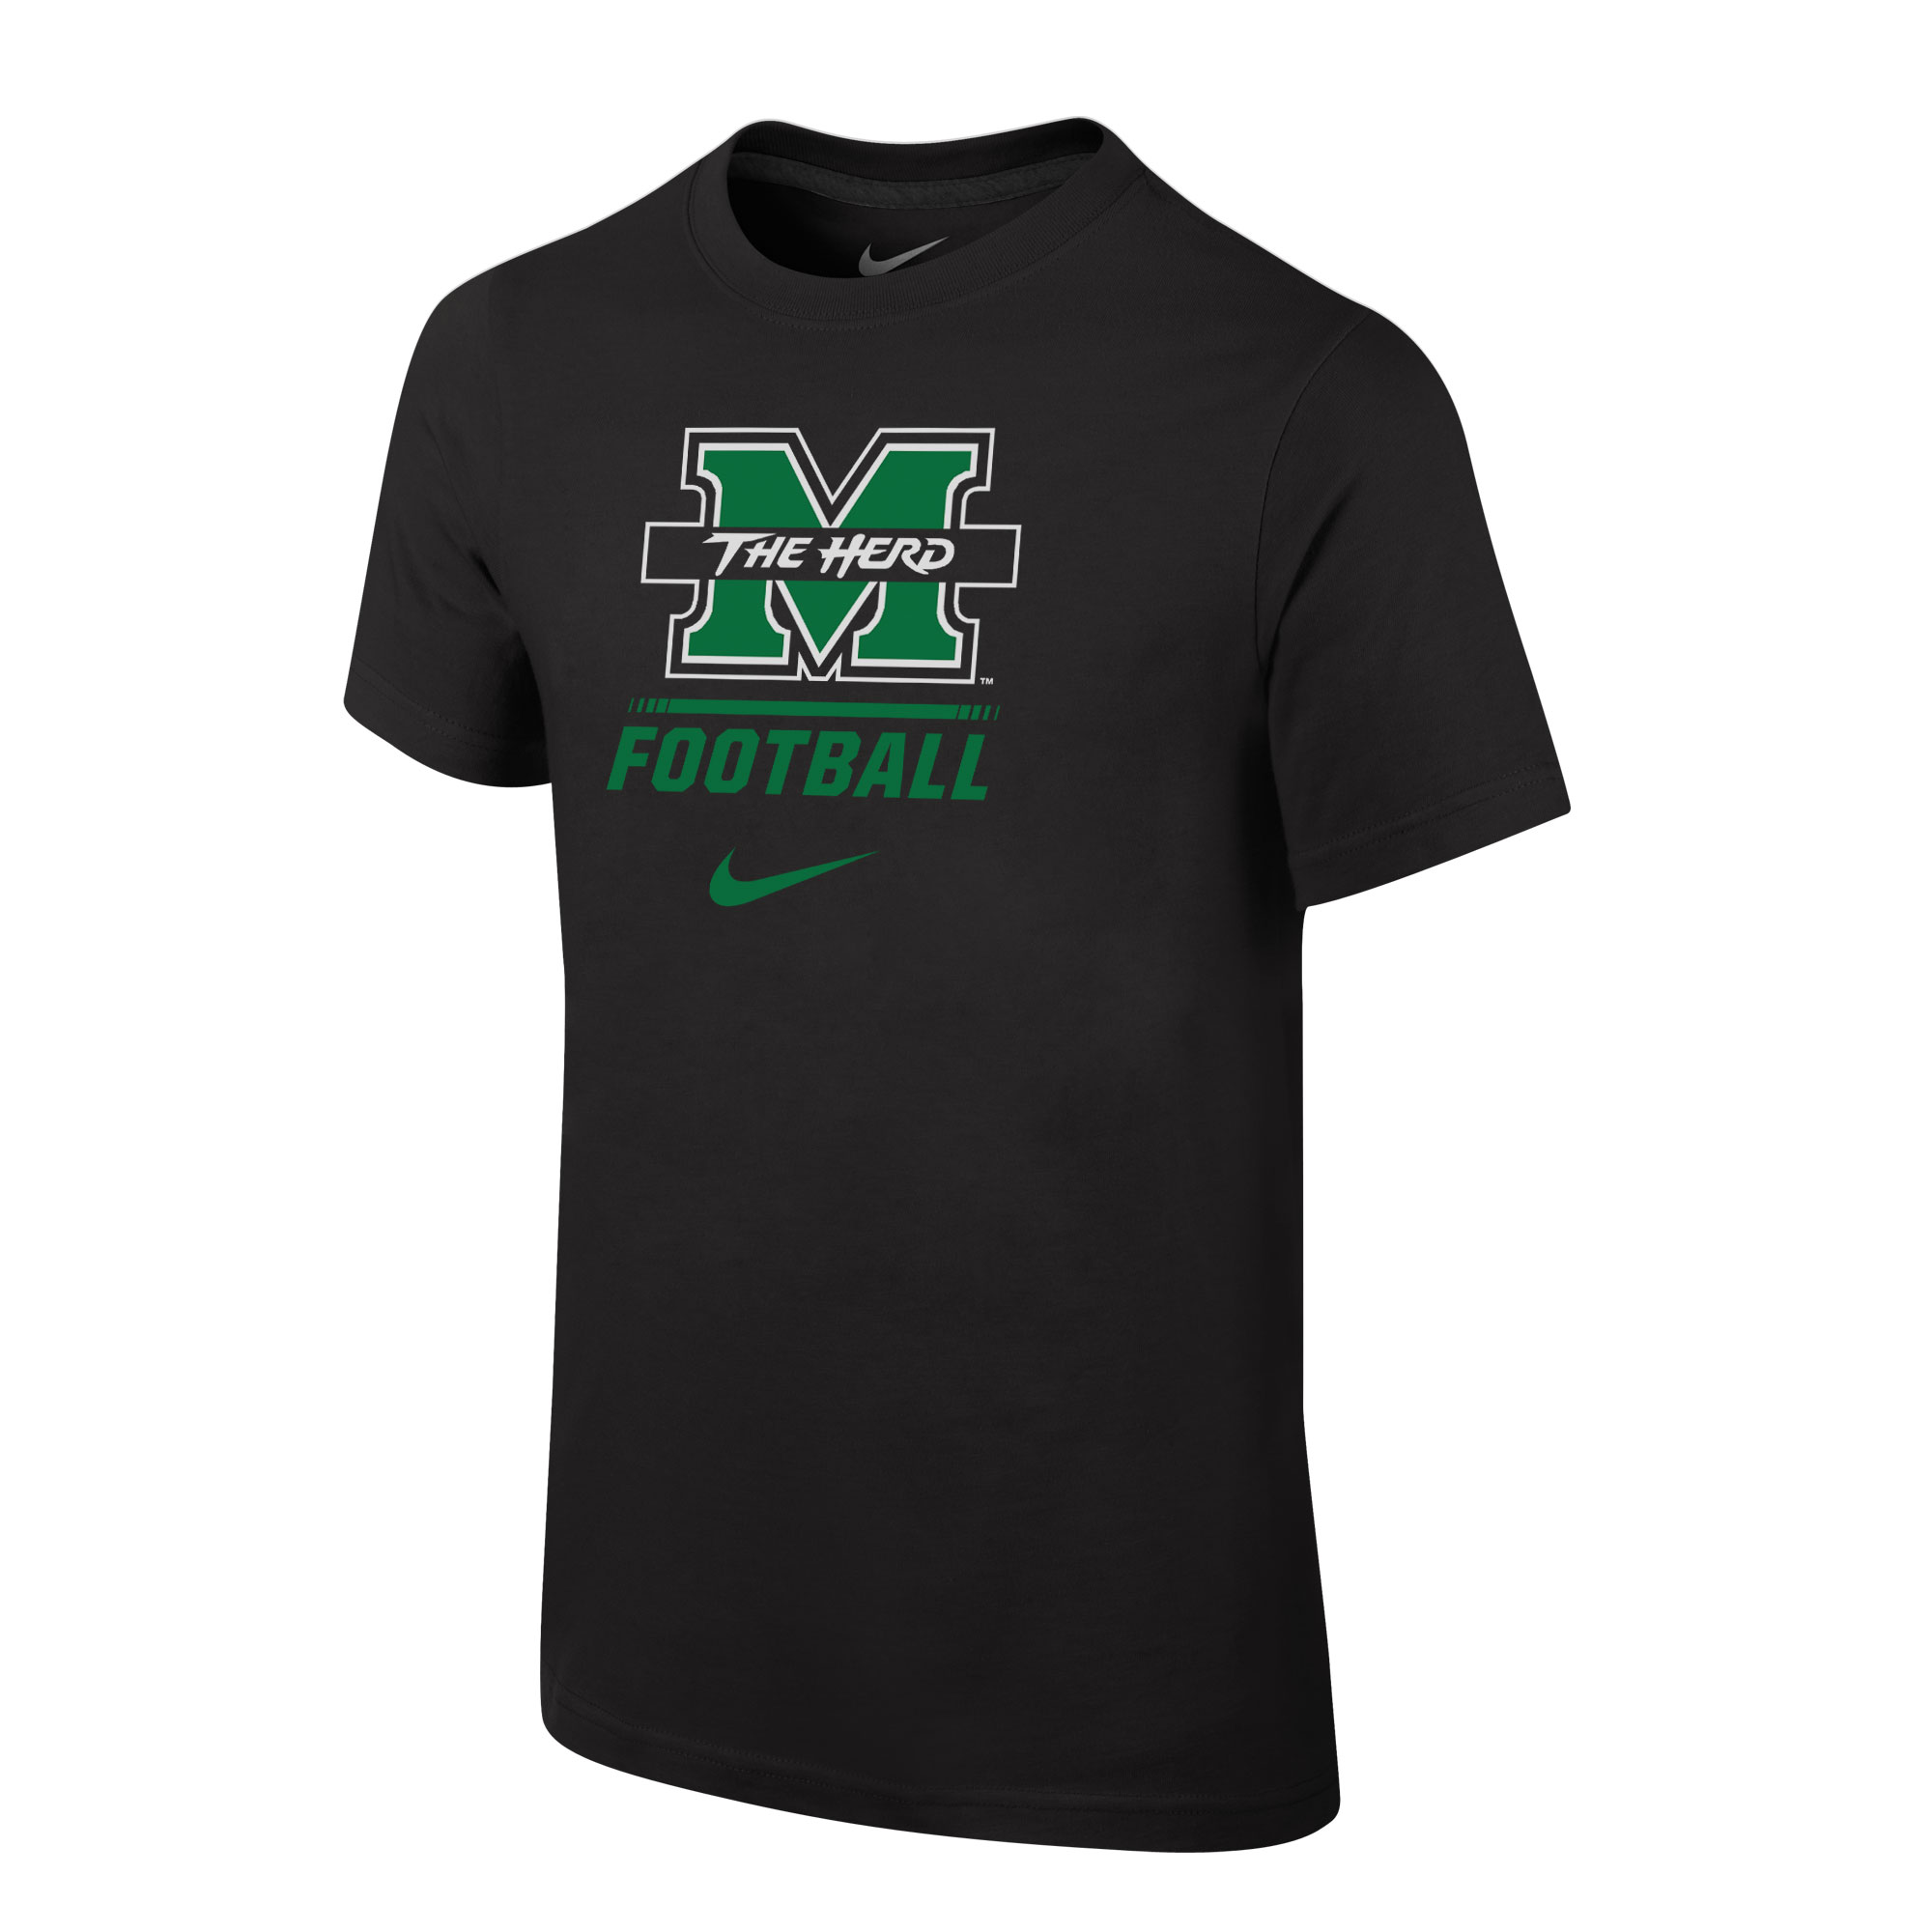 Nike <br> Core T <br> S-XL <br> $28.99